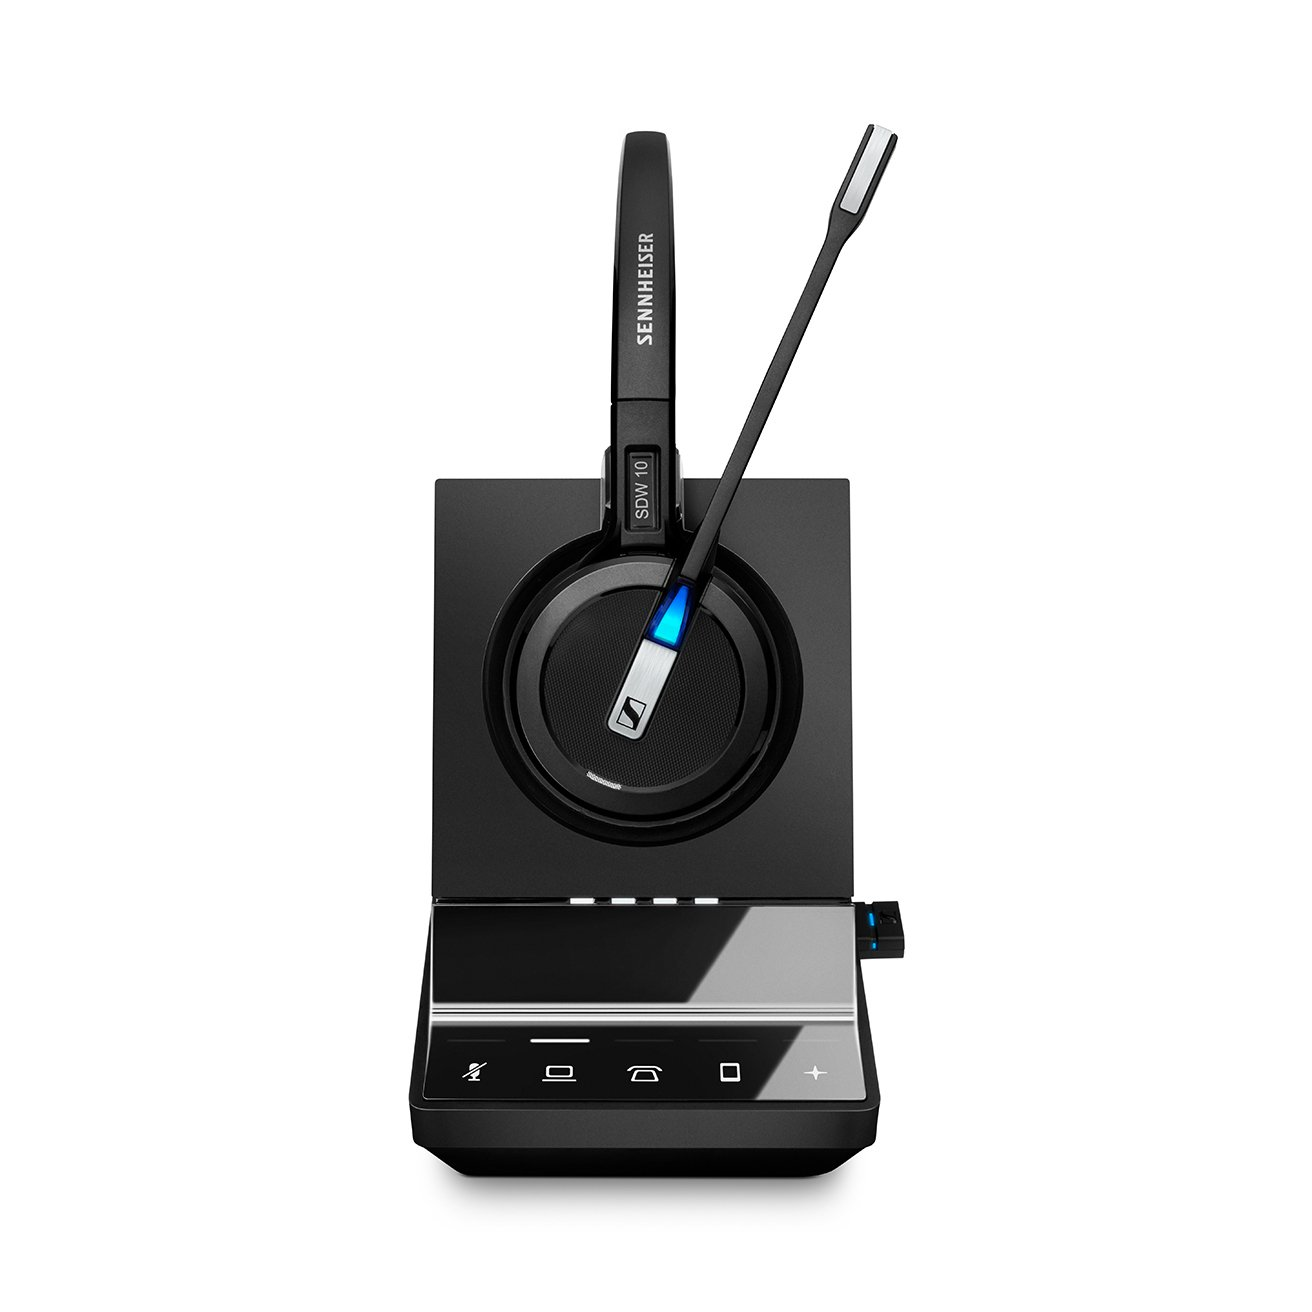 Sennheiser SDW 5016 Convertible Triple Connect Wireless Headset